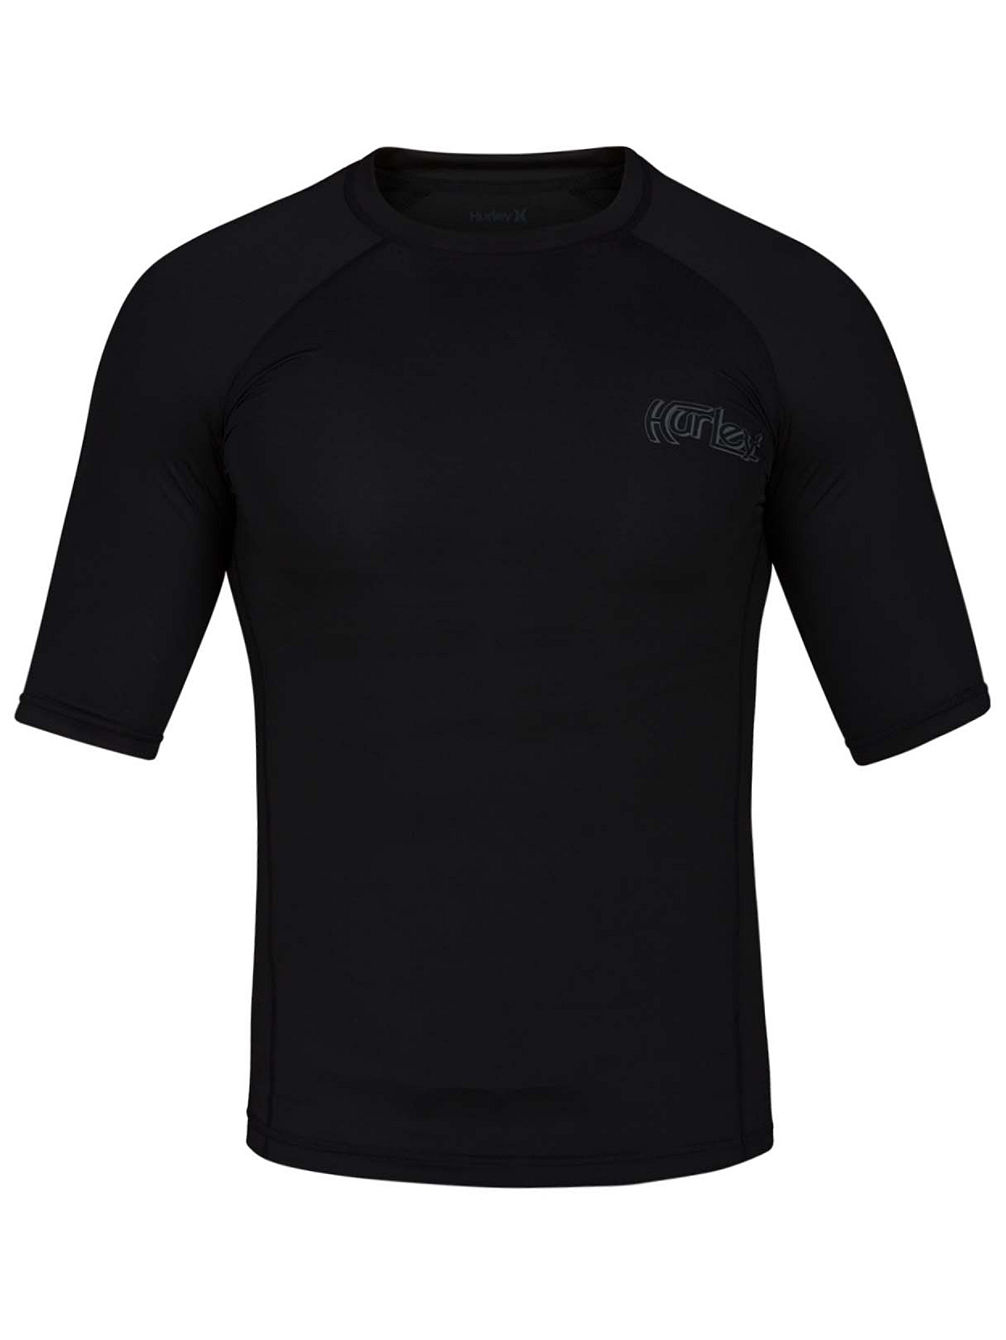 Pro Light OG Rash Guard